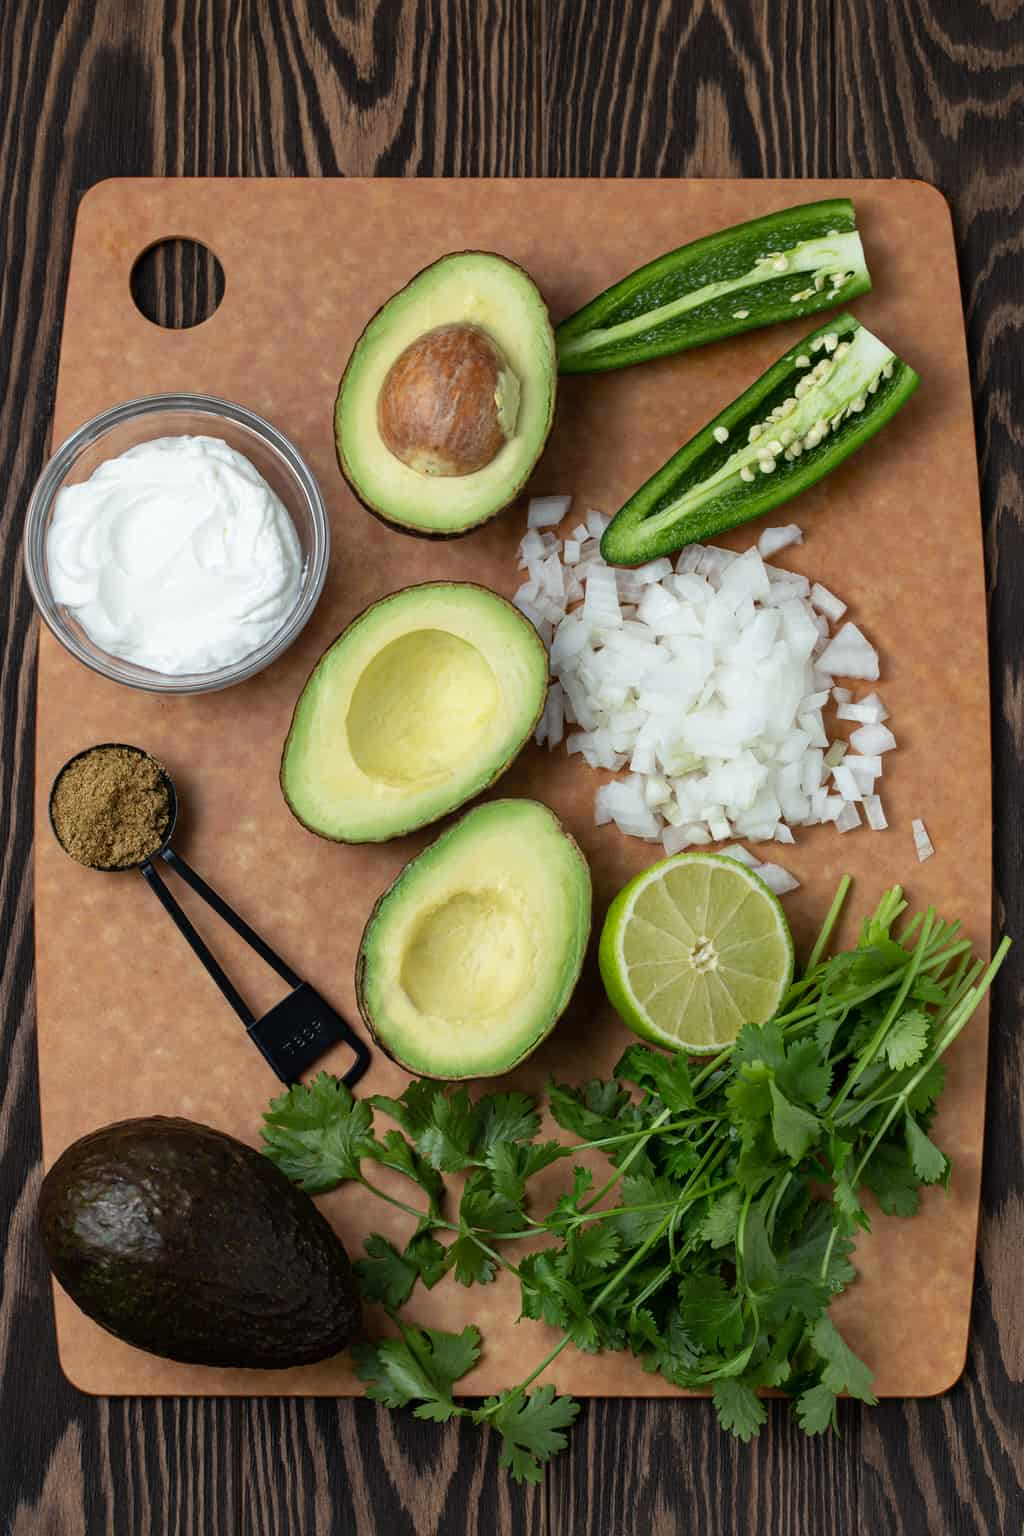 Tan cutting board filled with avocadoes, jalapeno pepper, cilantro, onion and limes to make Healthy Avocado Dip with Greek Yogurt.